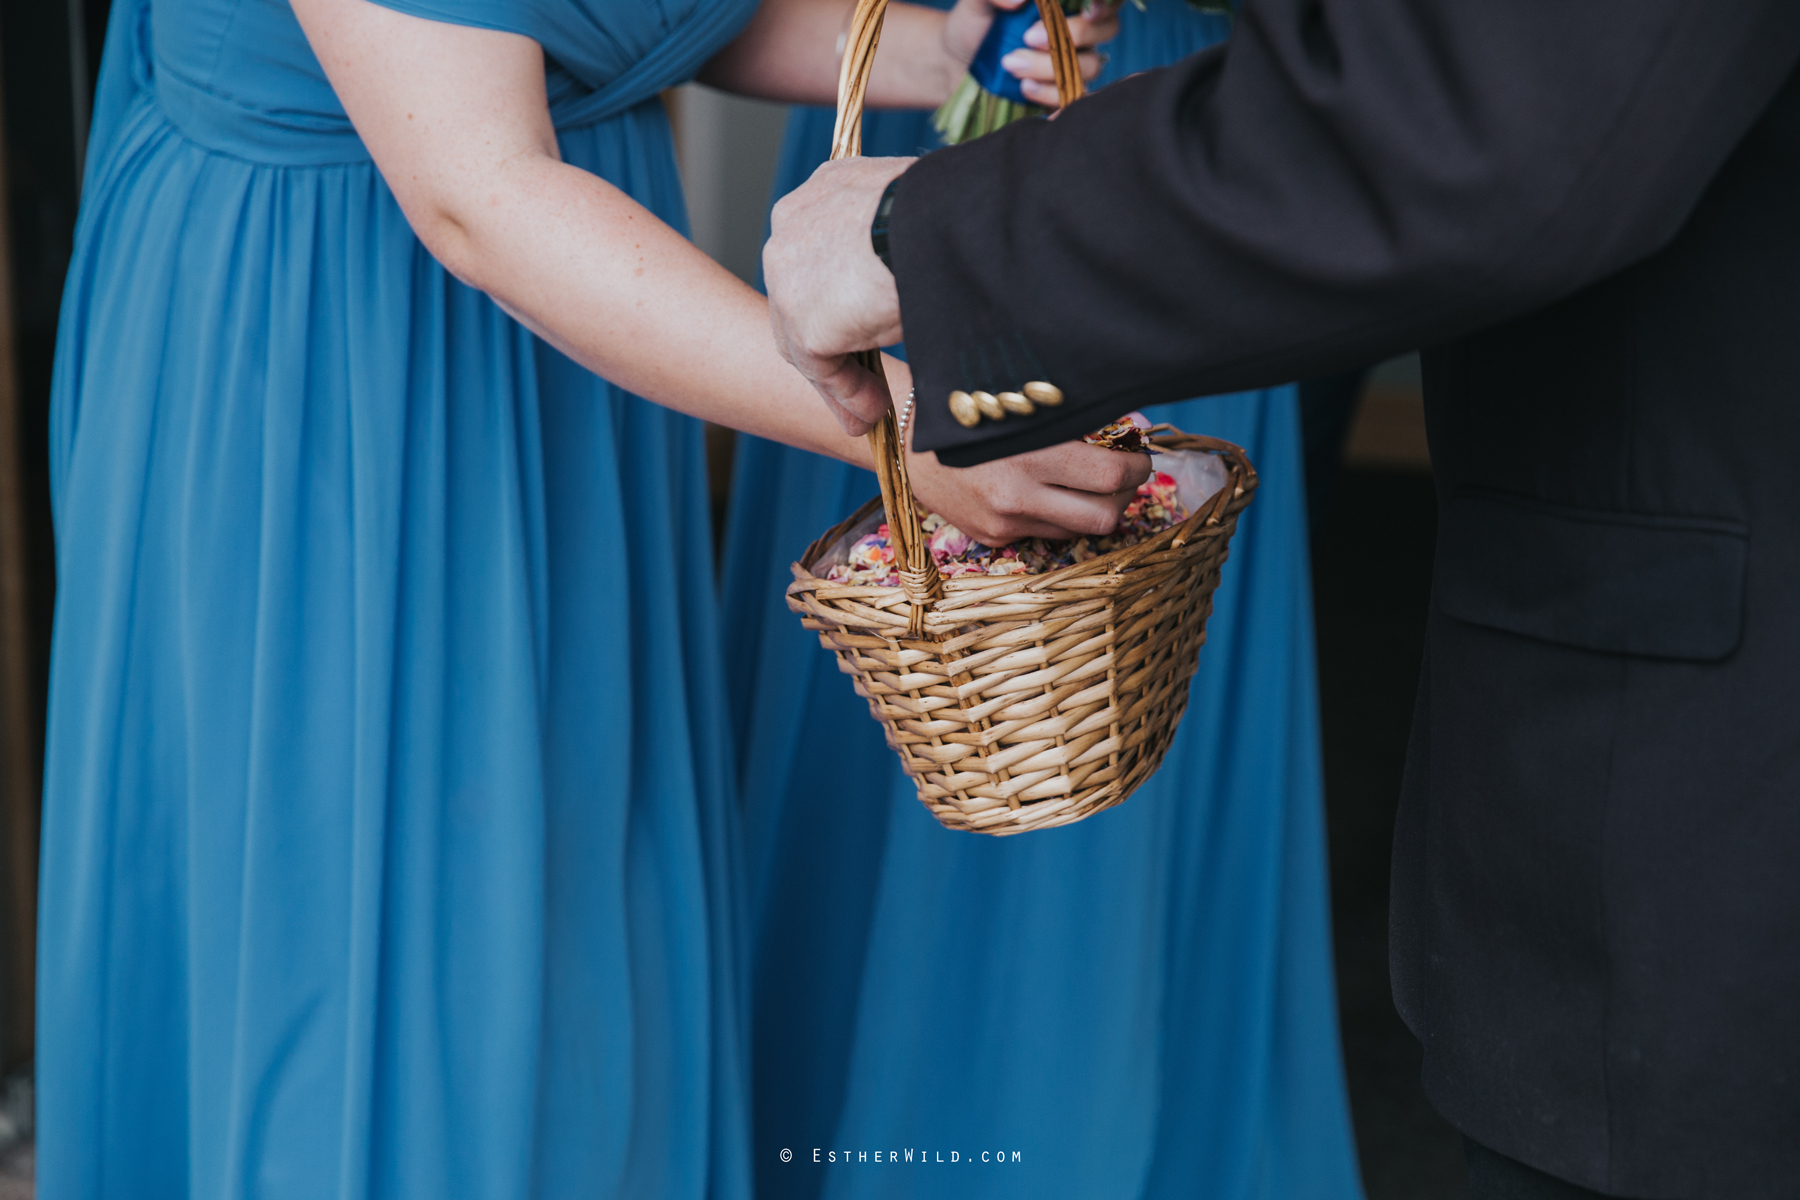 The_BoatHouse_Wedding_Venue_Ormesby_Norfolk_Broads_Boat_Wedding_Photography_Esther_Wild_Photographer_IMG_1390.jpg